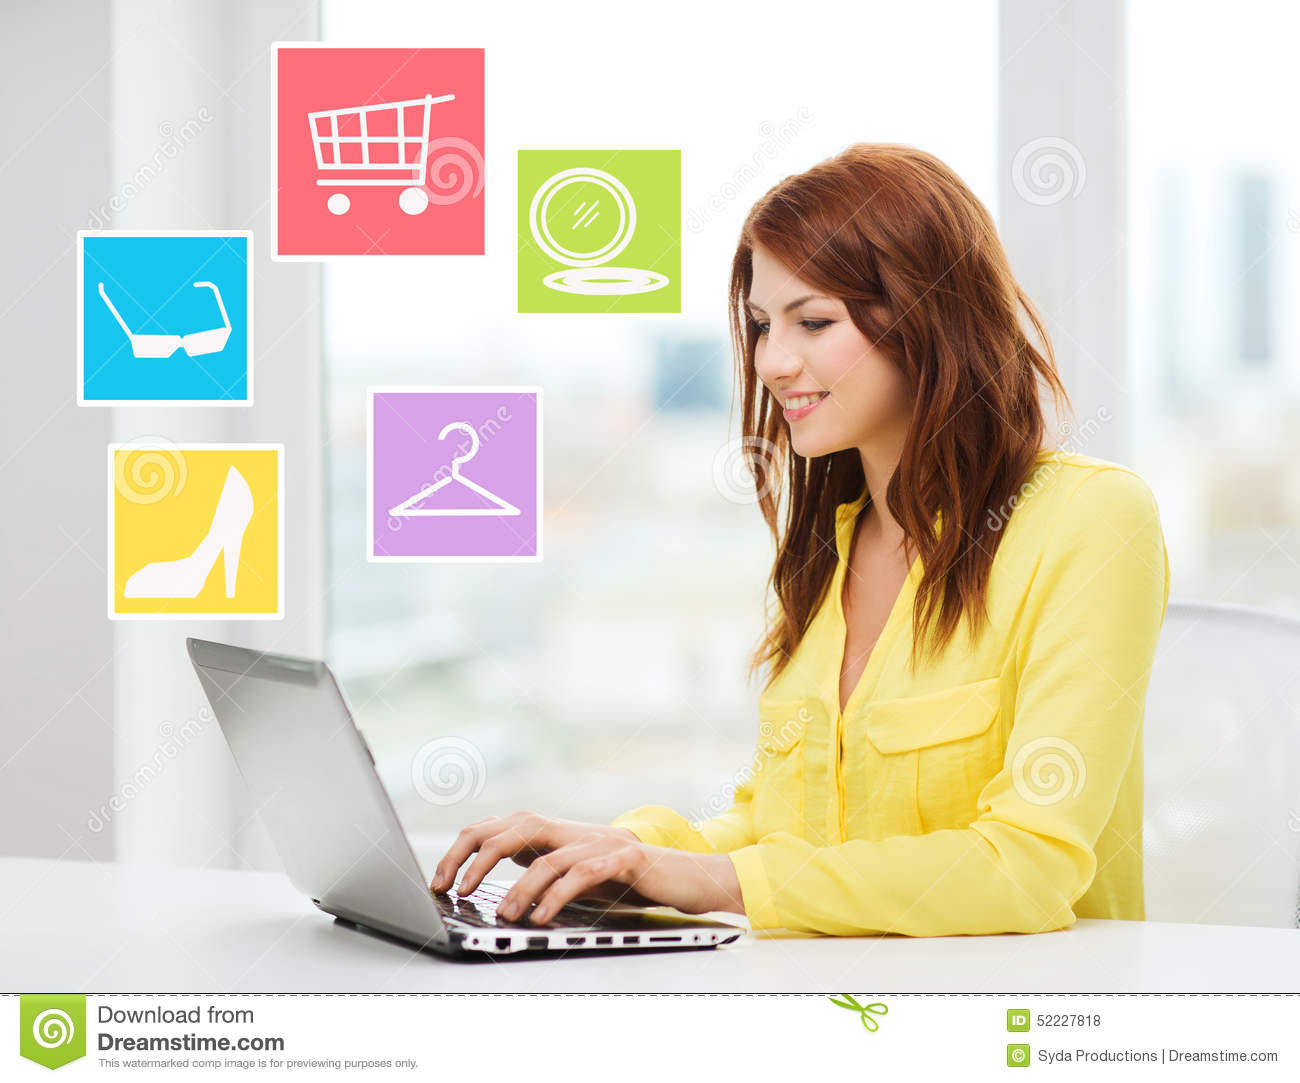 smiling-woman-laptop-shopping-online-home-fashion-sale-people-technology-concept-computer-ant-52227818.jpg